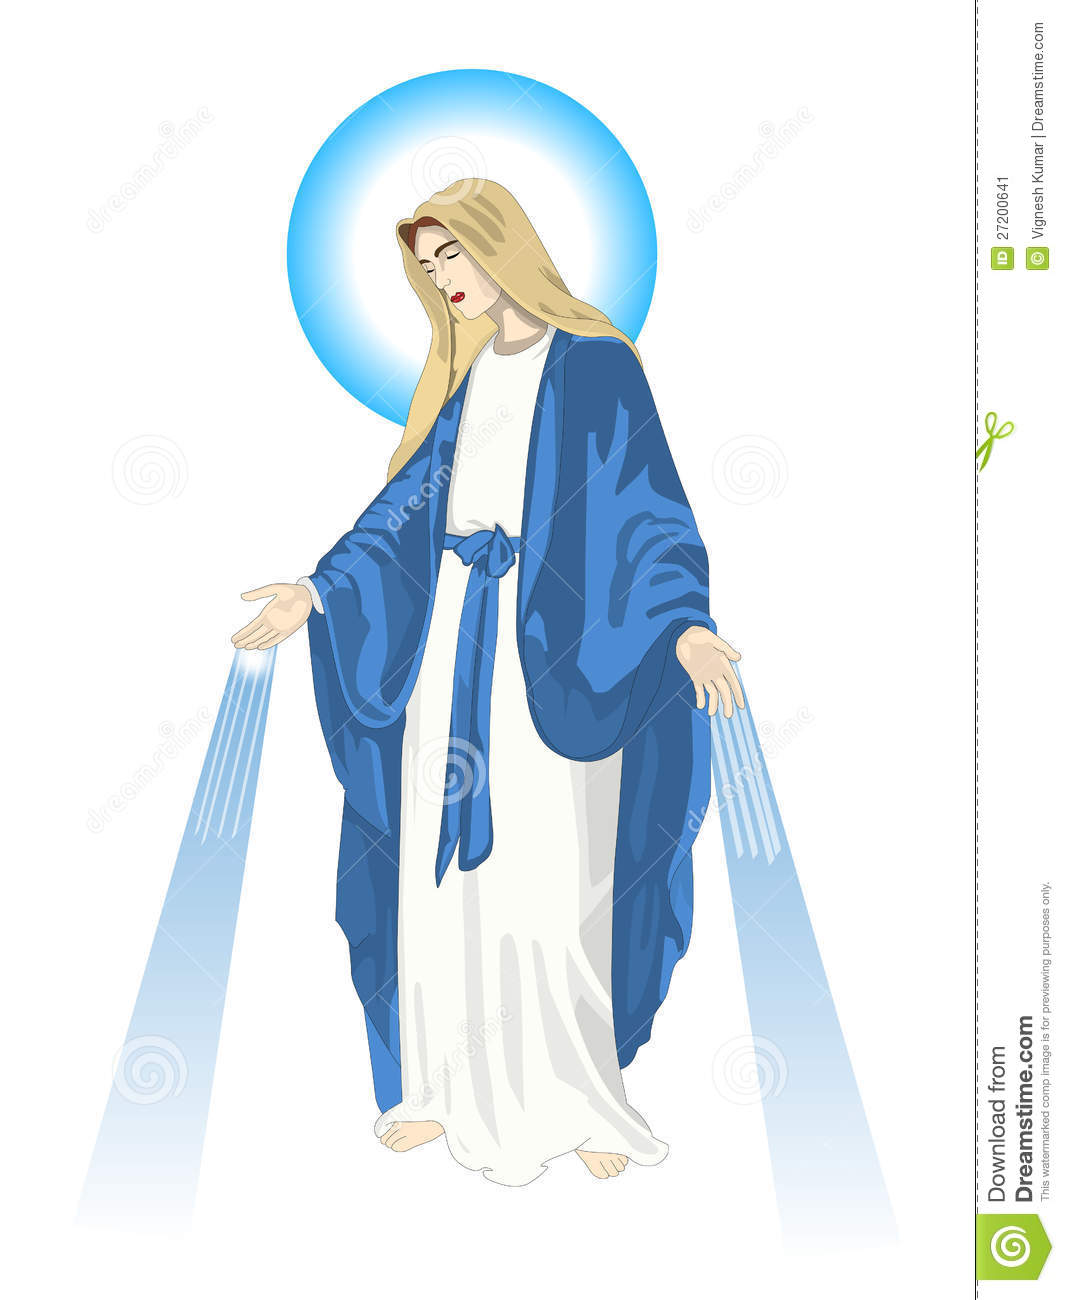 Jesus and mother mary stock photo. Image of scene, mary 1583406.